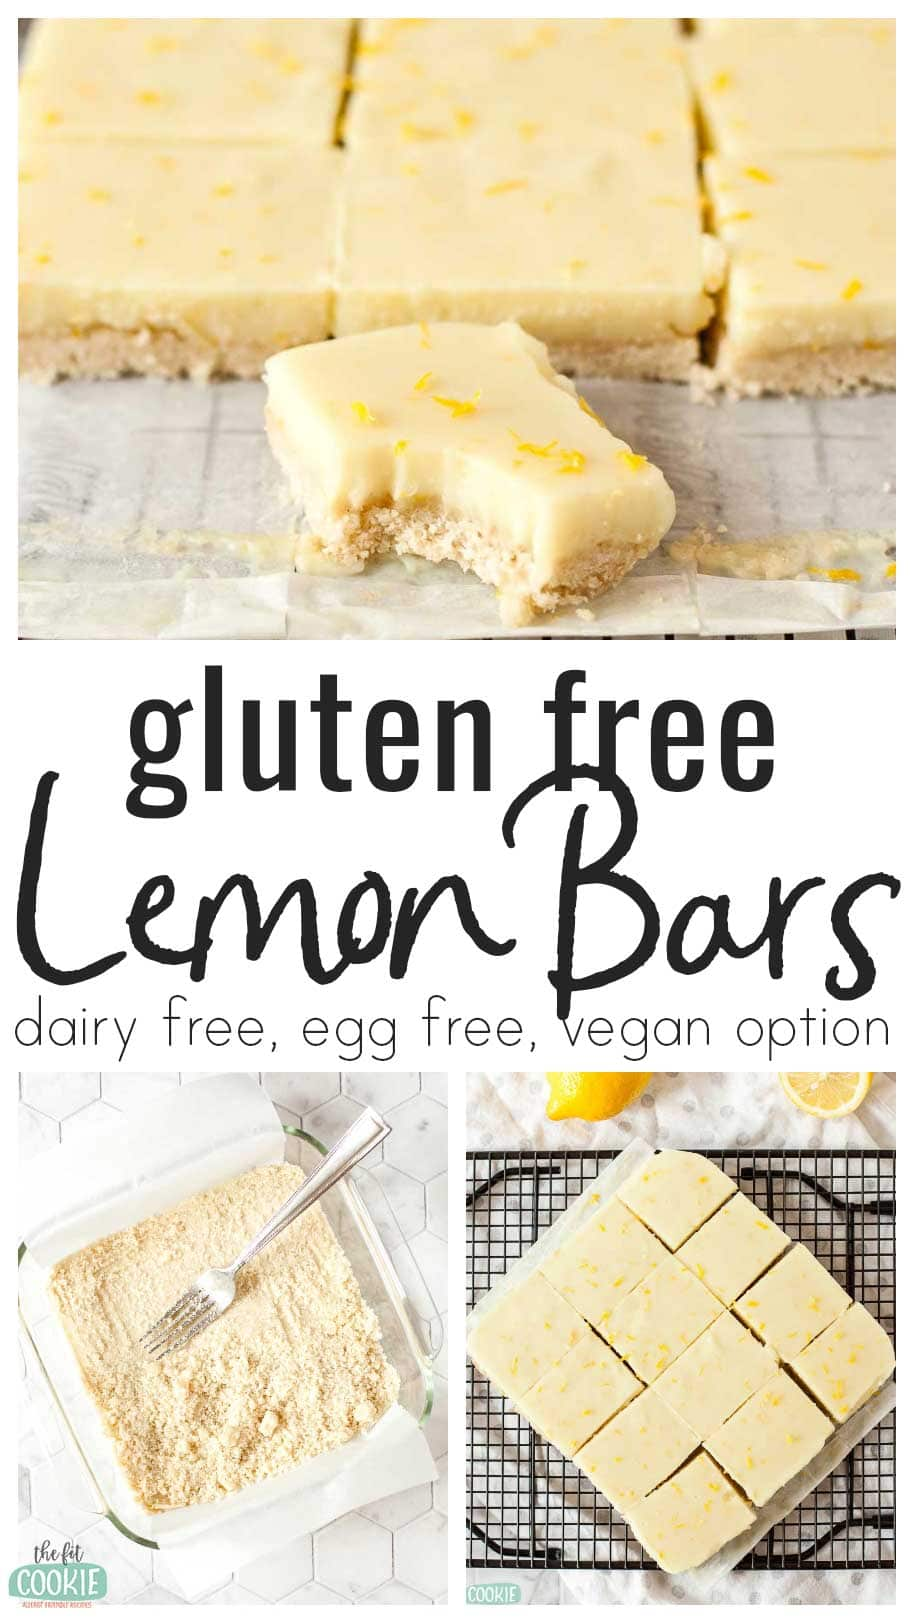 photo collage of lemon bars with text overlay